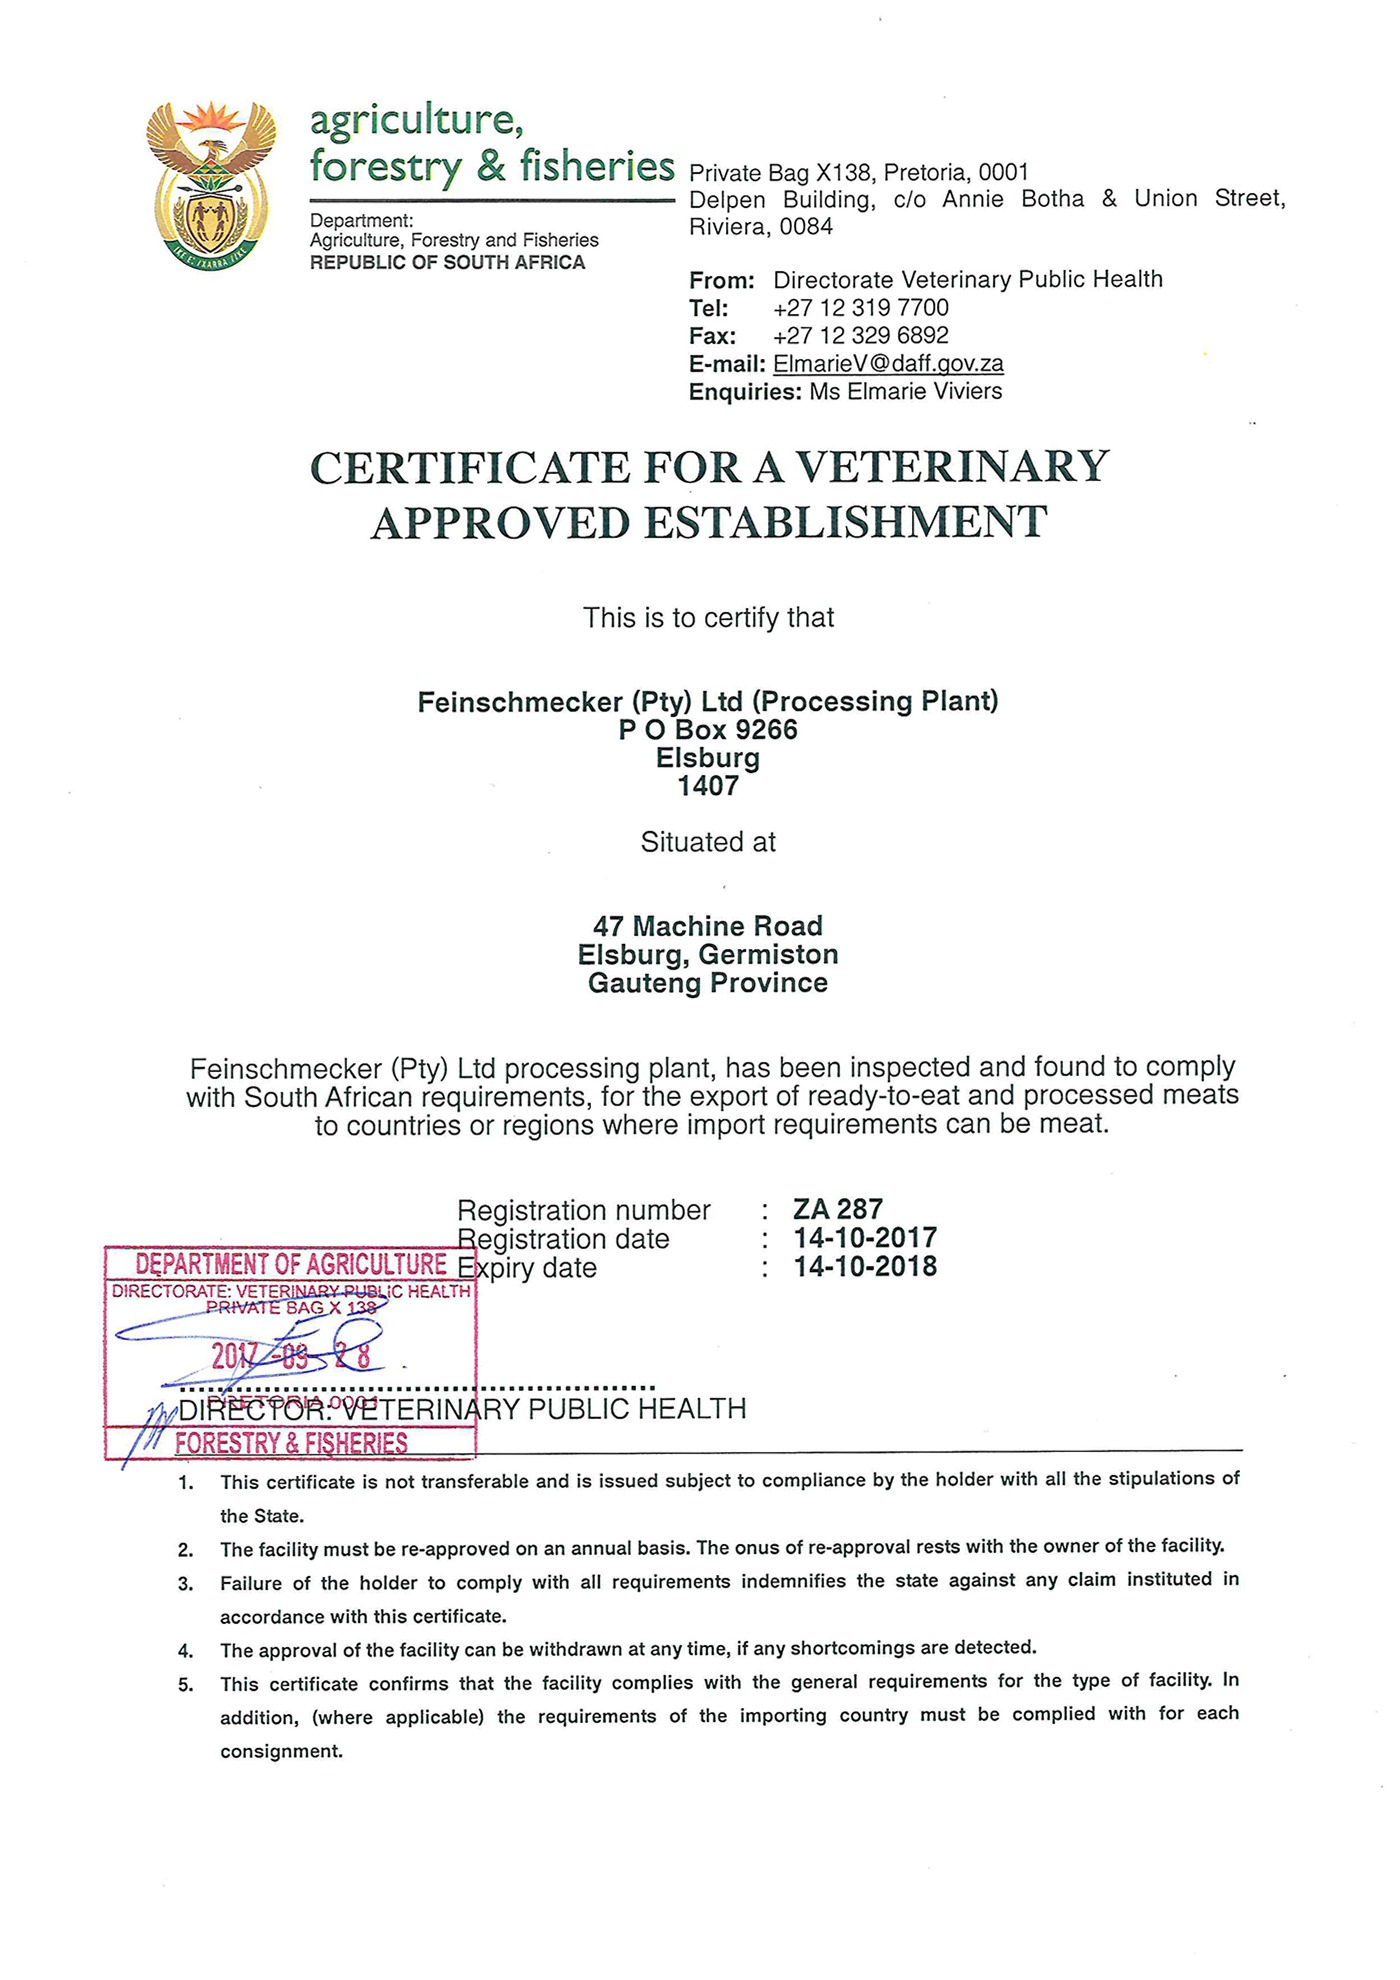 Feinschmecker is a veterinary approved meat establishment